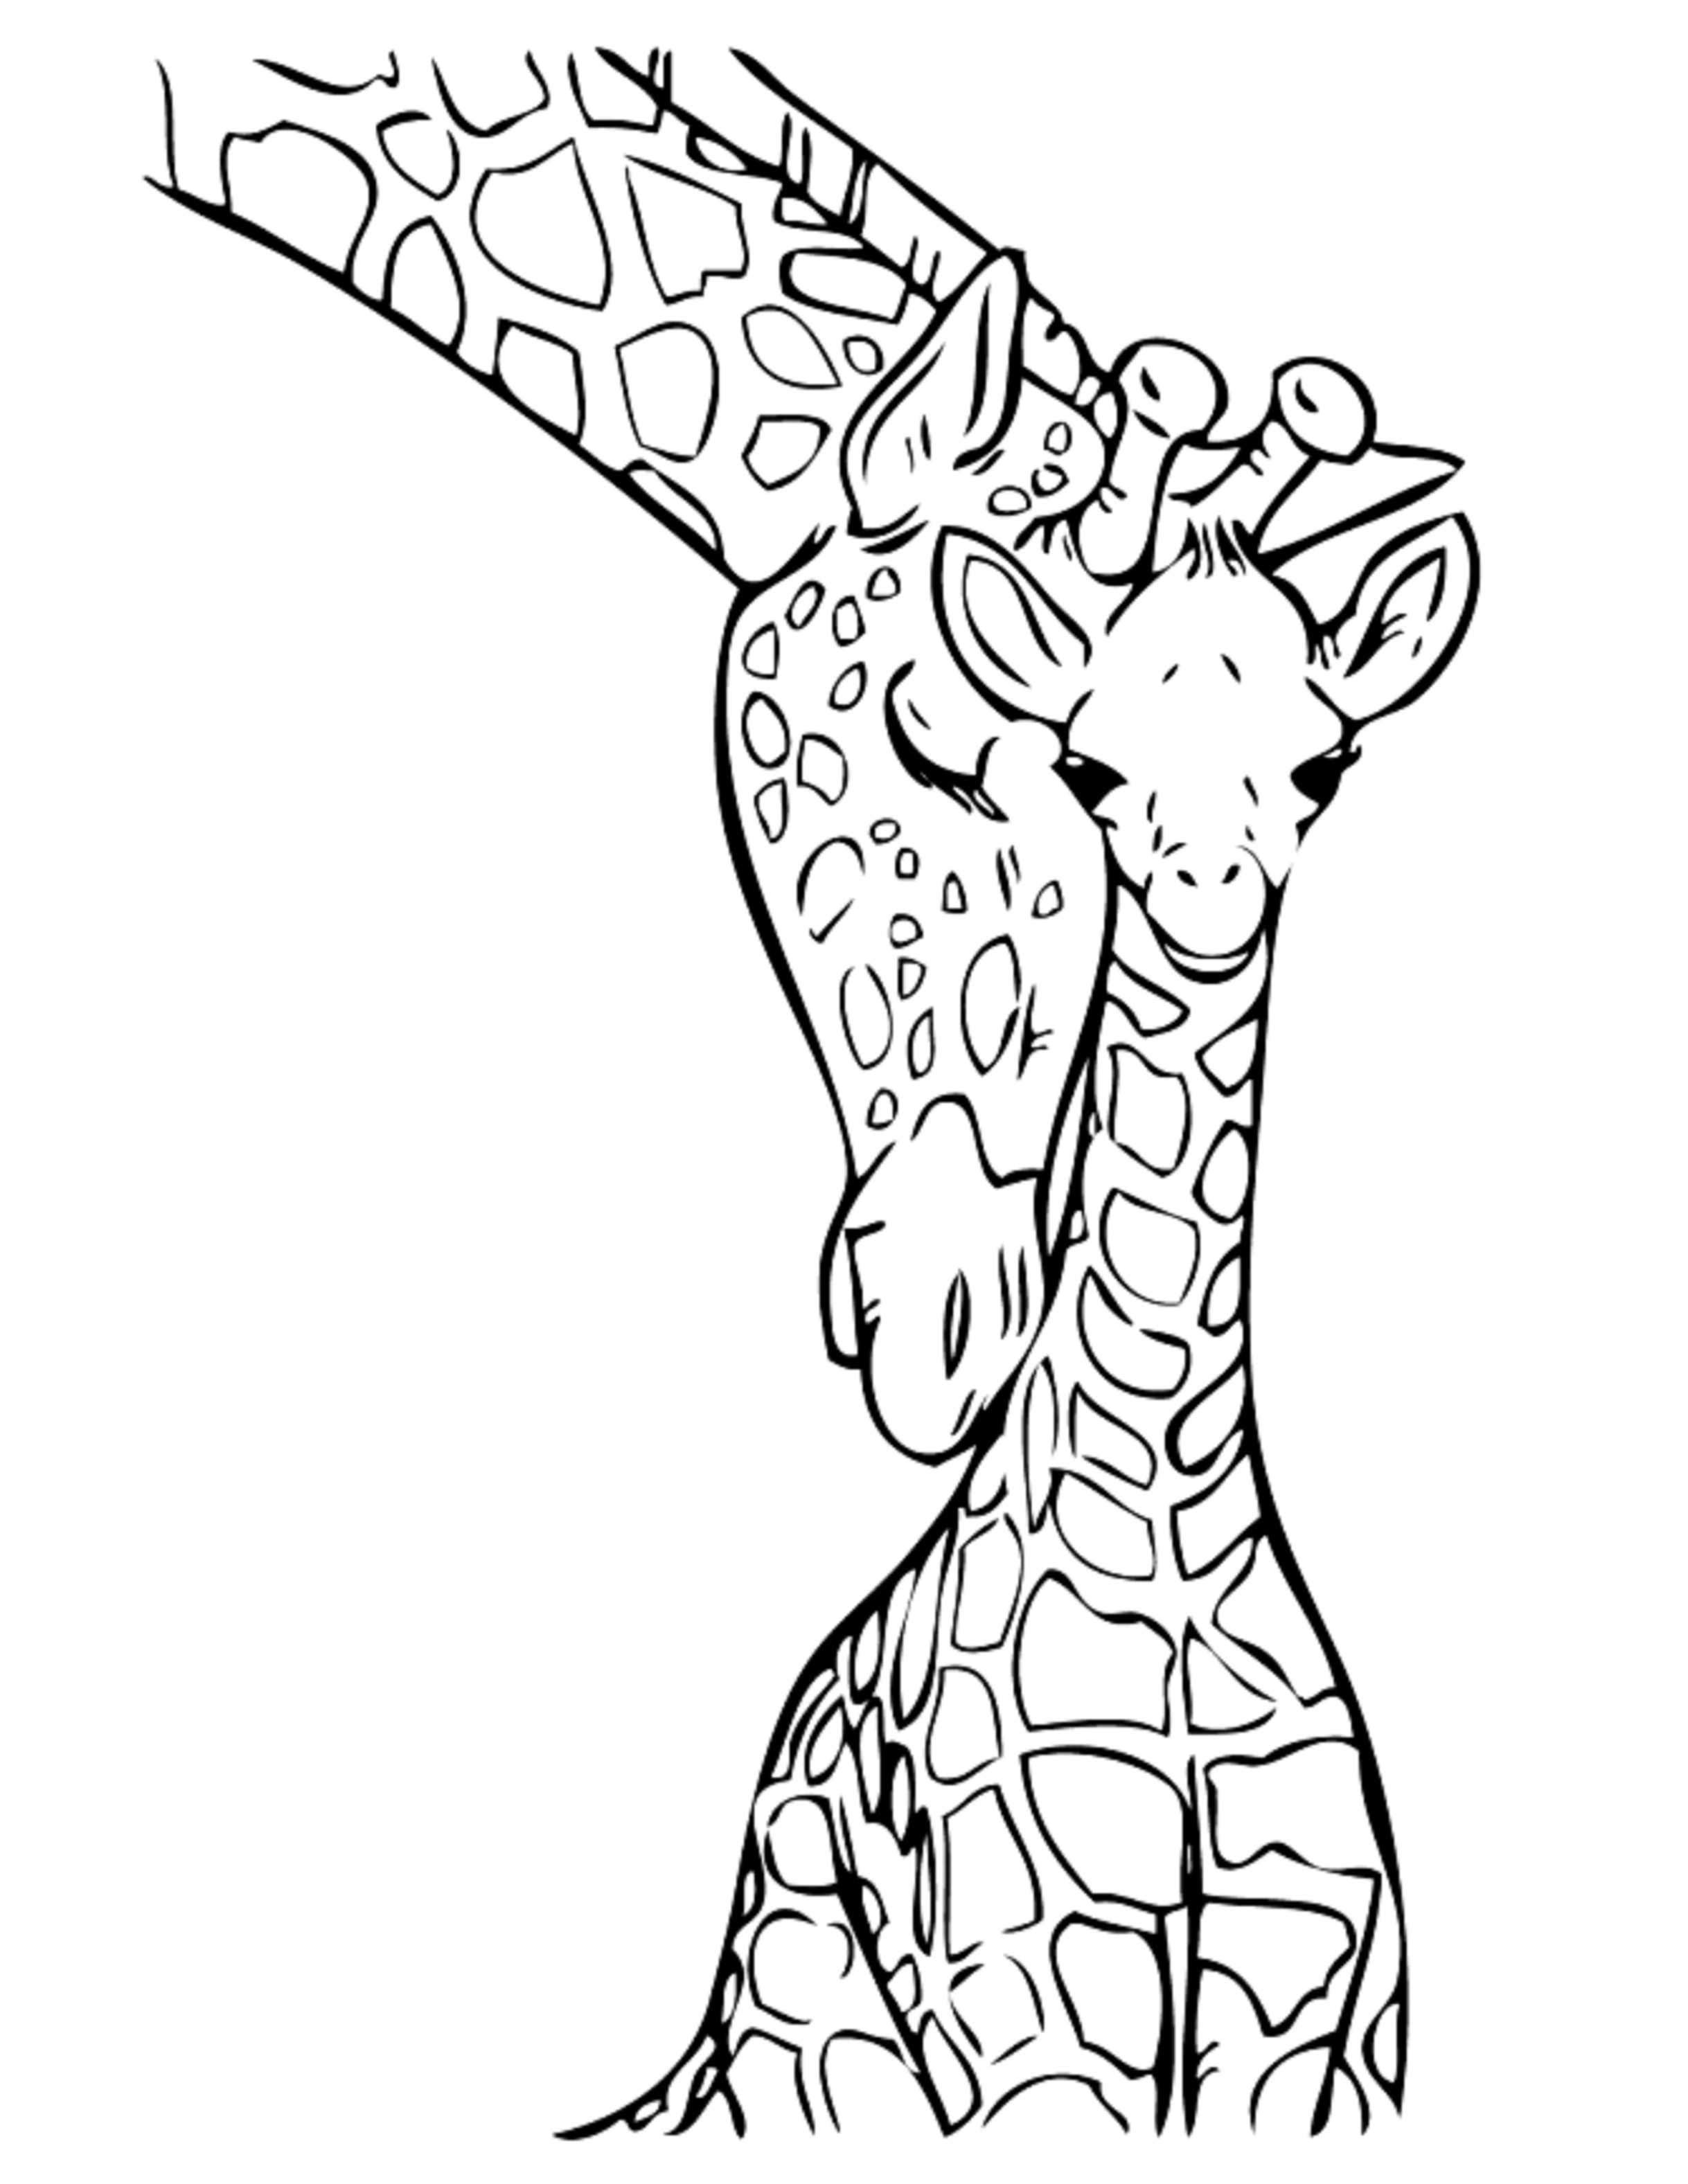 coloring images of animals jungle coloring pages best coloring pages for kids of animals coloring images